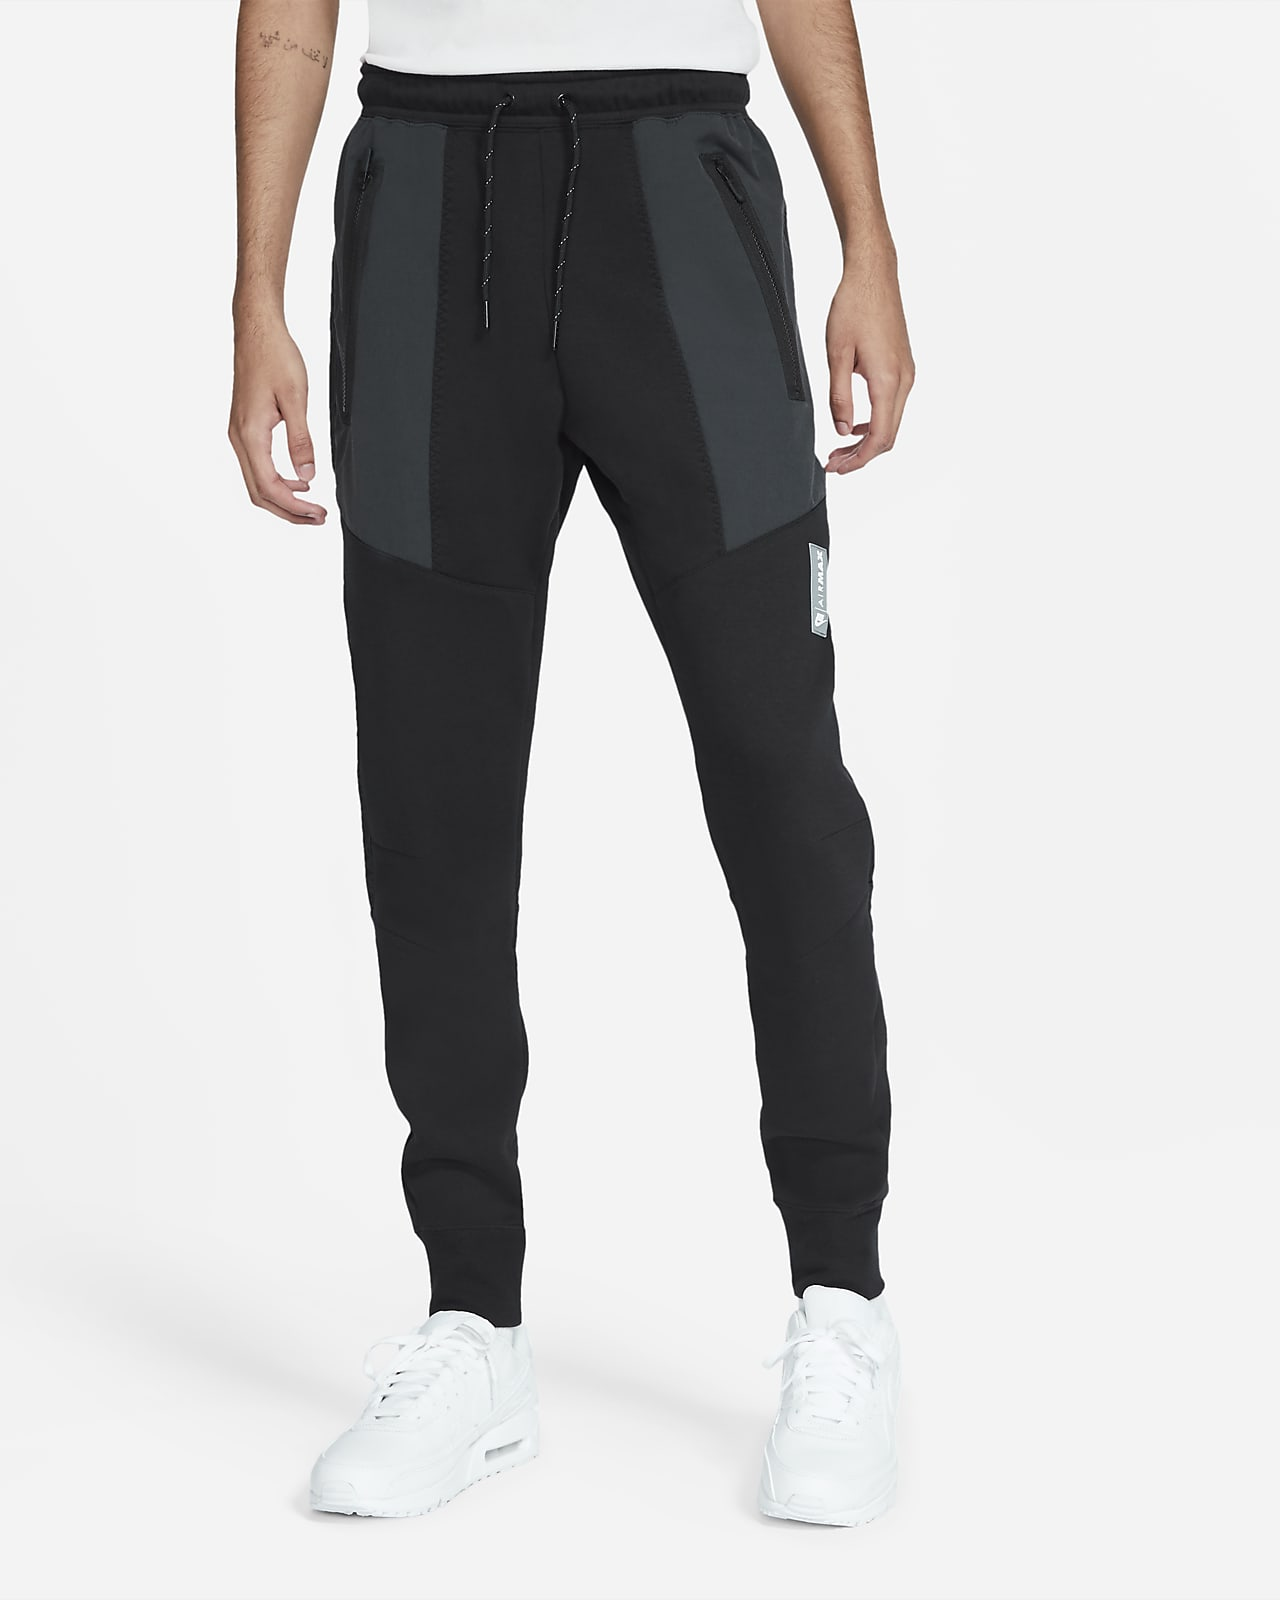 Nike Sportswear Air Max Men's Fleece Trousers